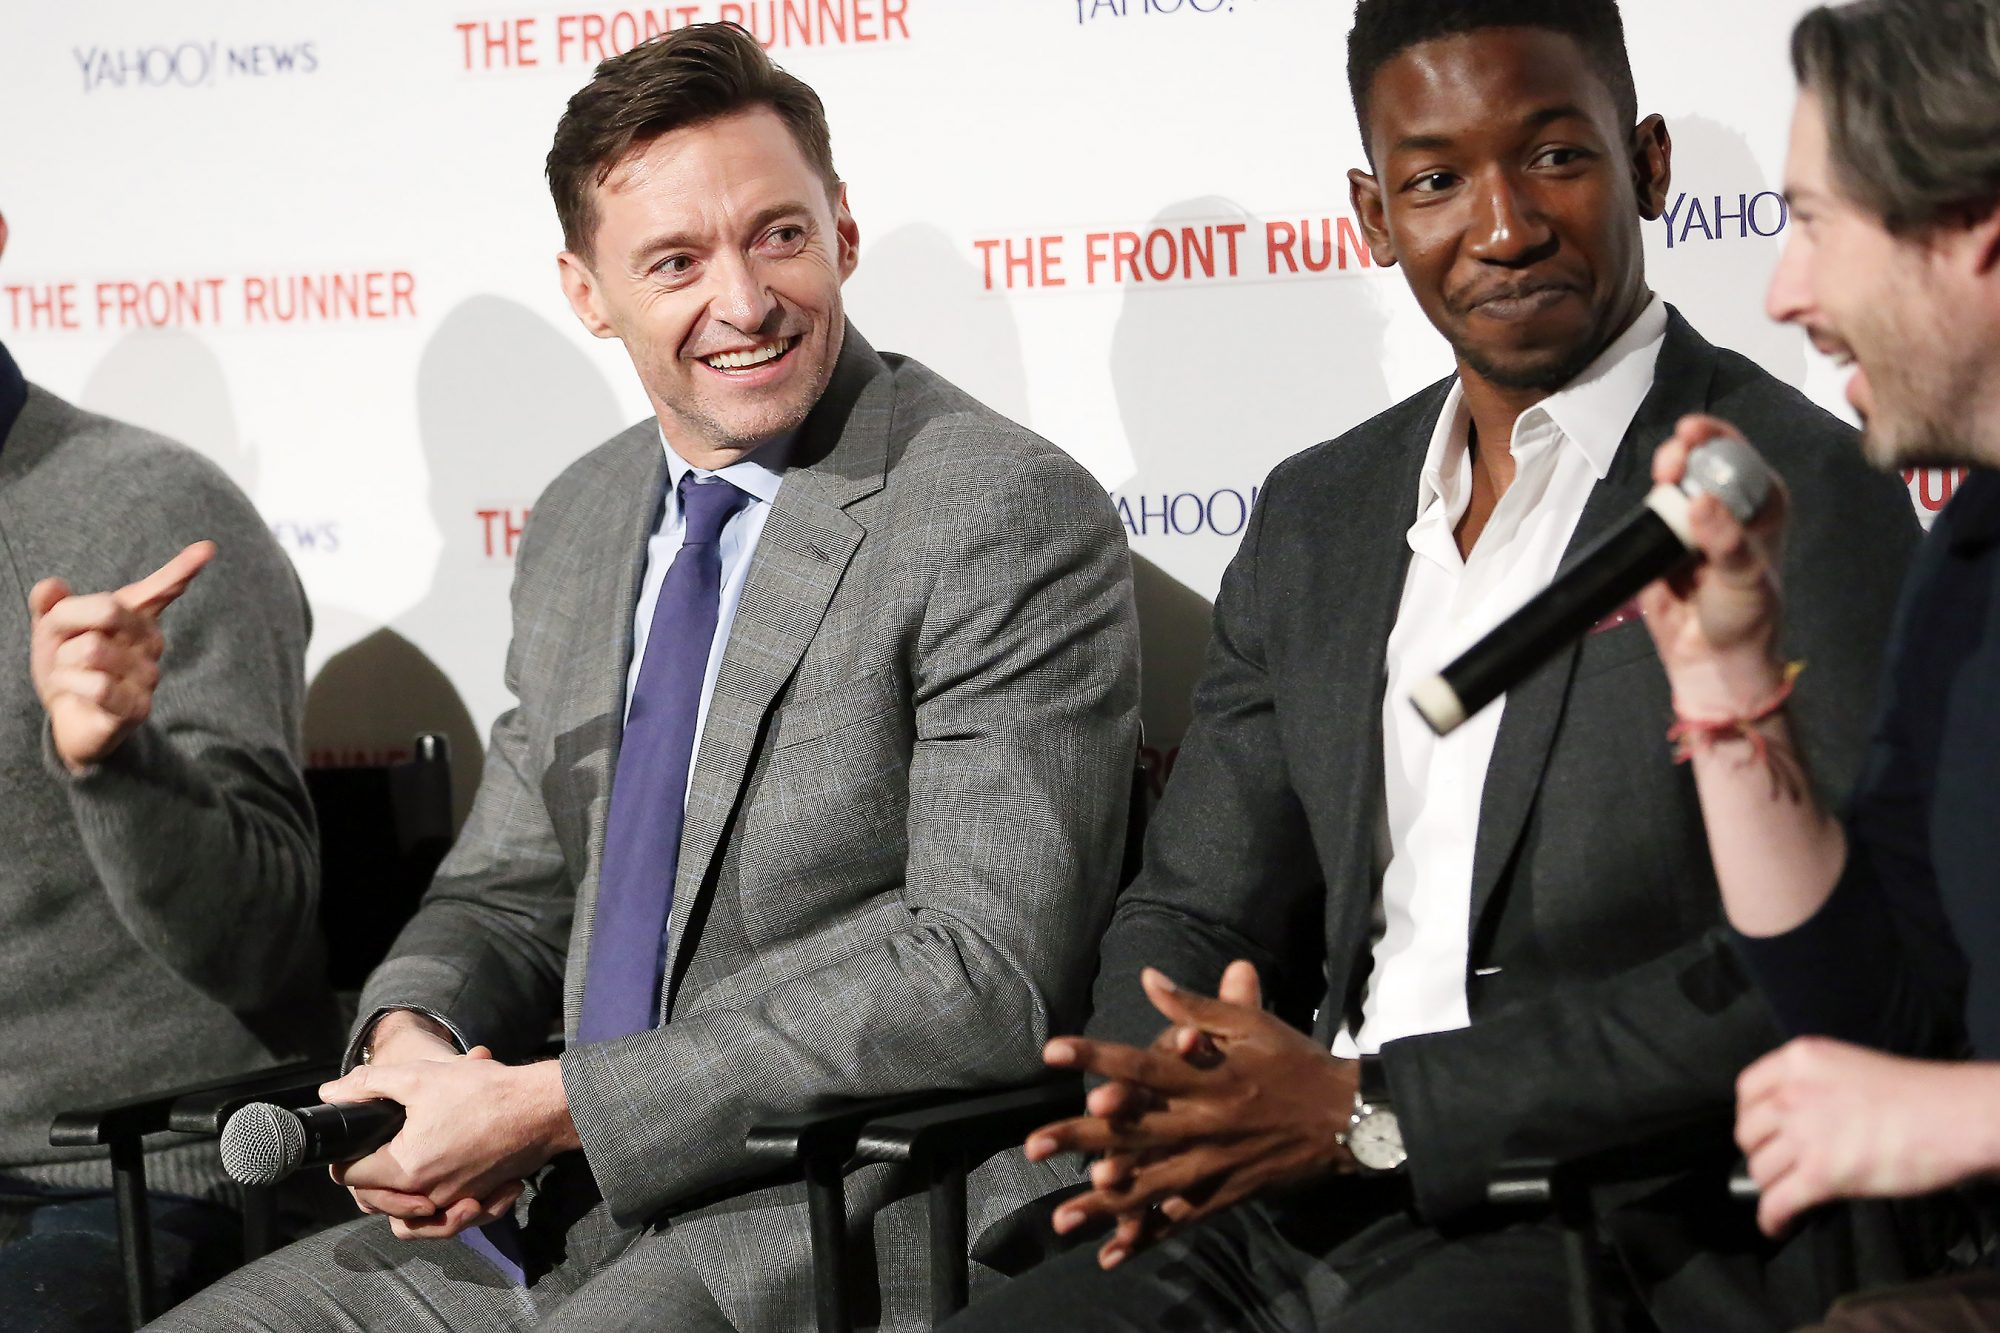 """Yahoo News And Sony Pictures Private Screening Of """"The Front Runner"""""""